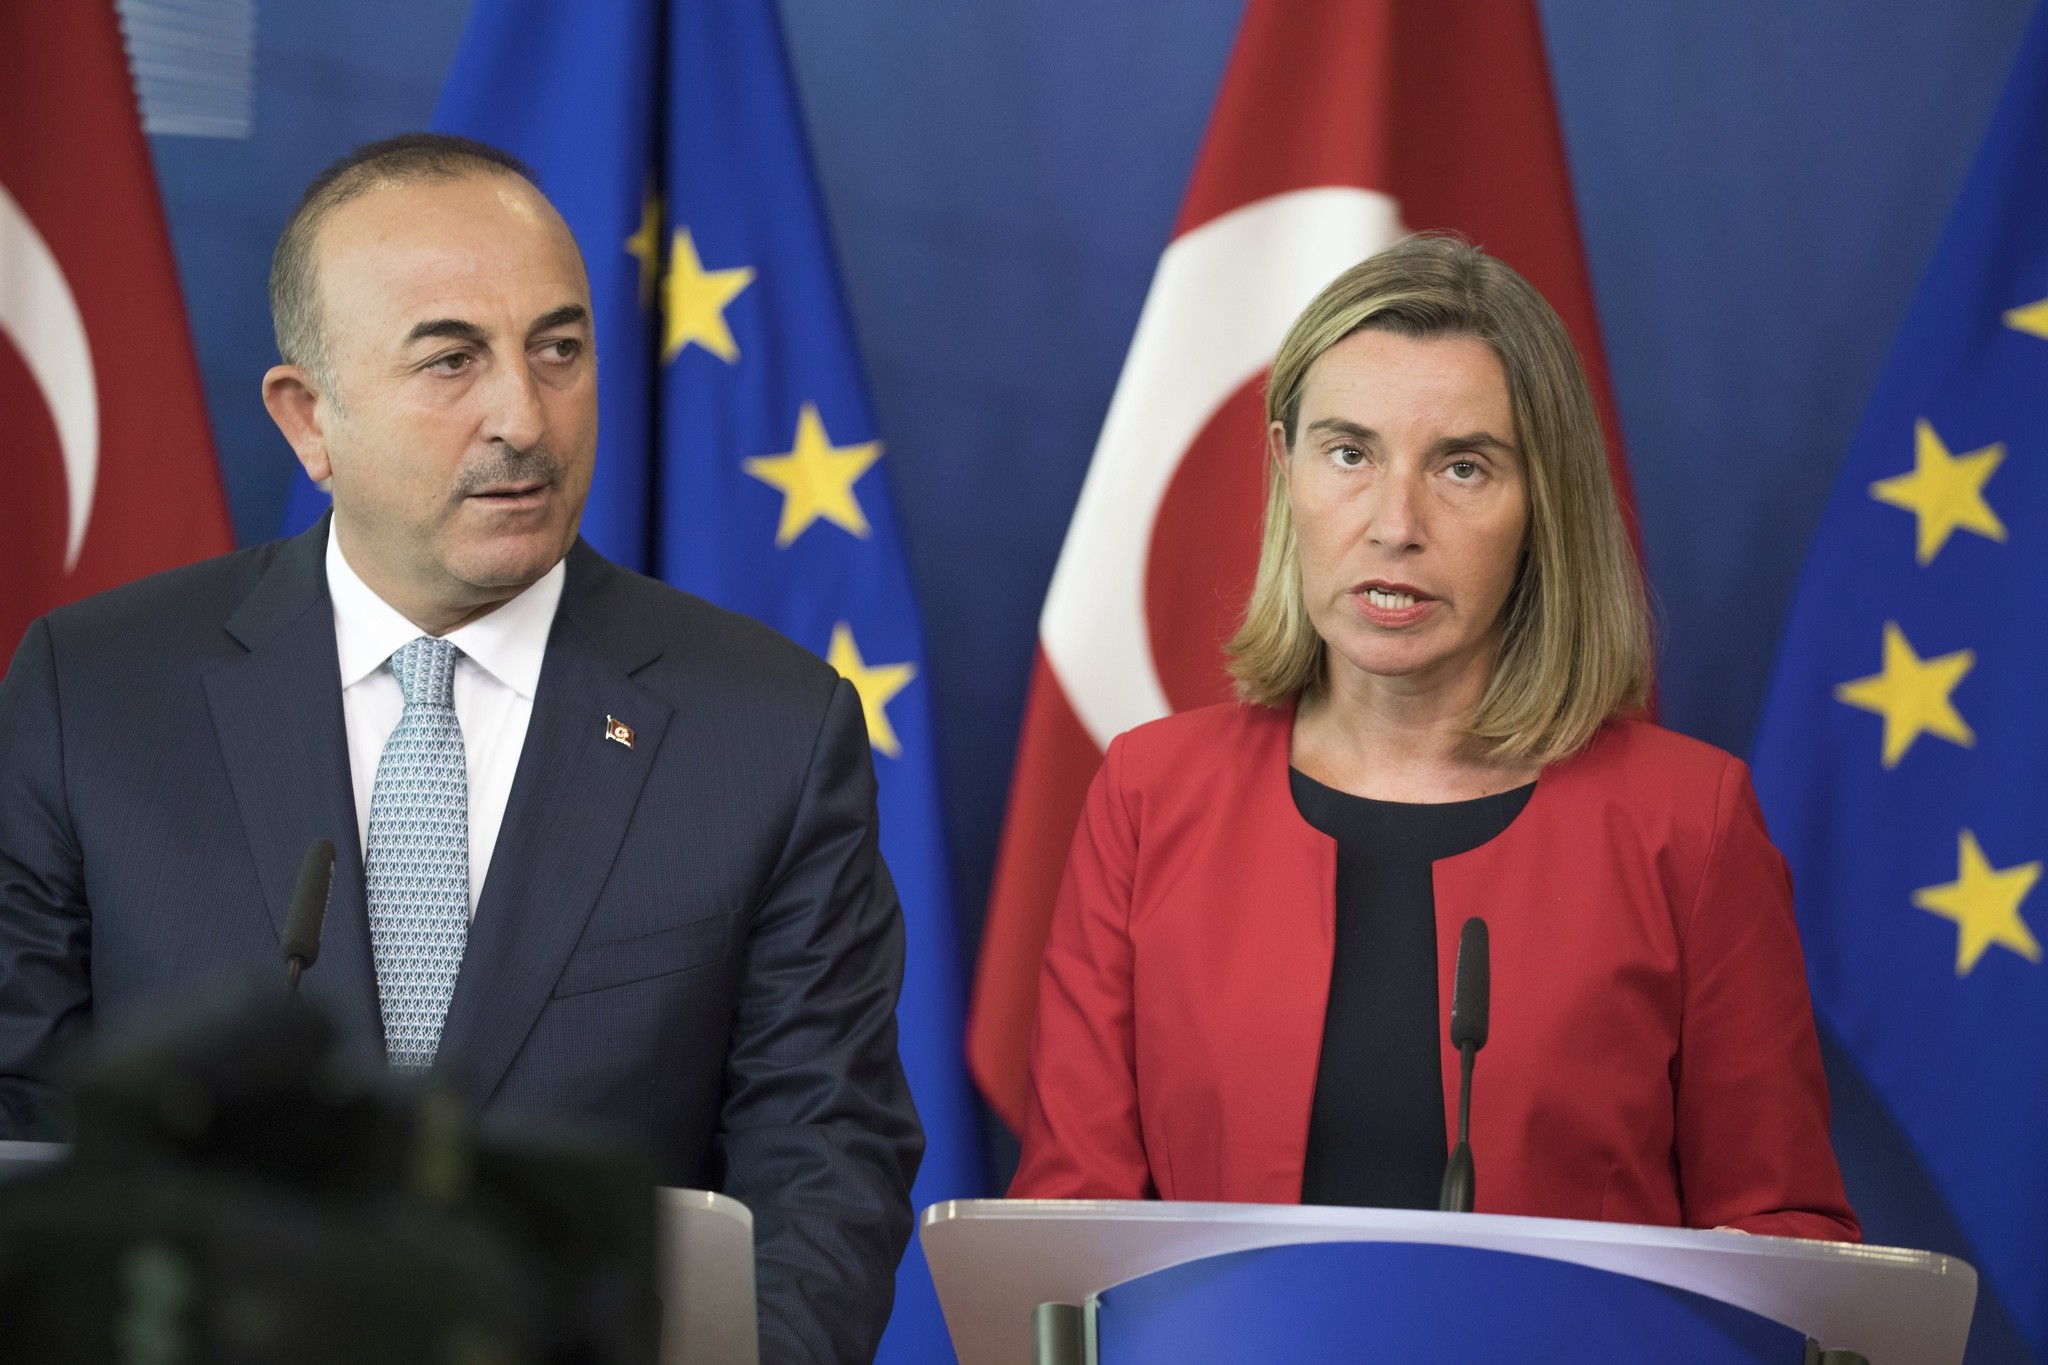 Foreign Minister Mevlu00fct u00c7avuu015fou011fu, and High Representative of the EU for Foreign Affairs and Security Policy Federica Mogherini, speak at a press conference in Brussels. (AP Photo)